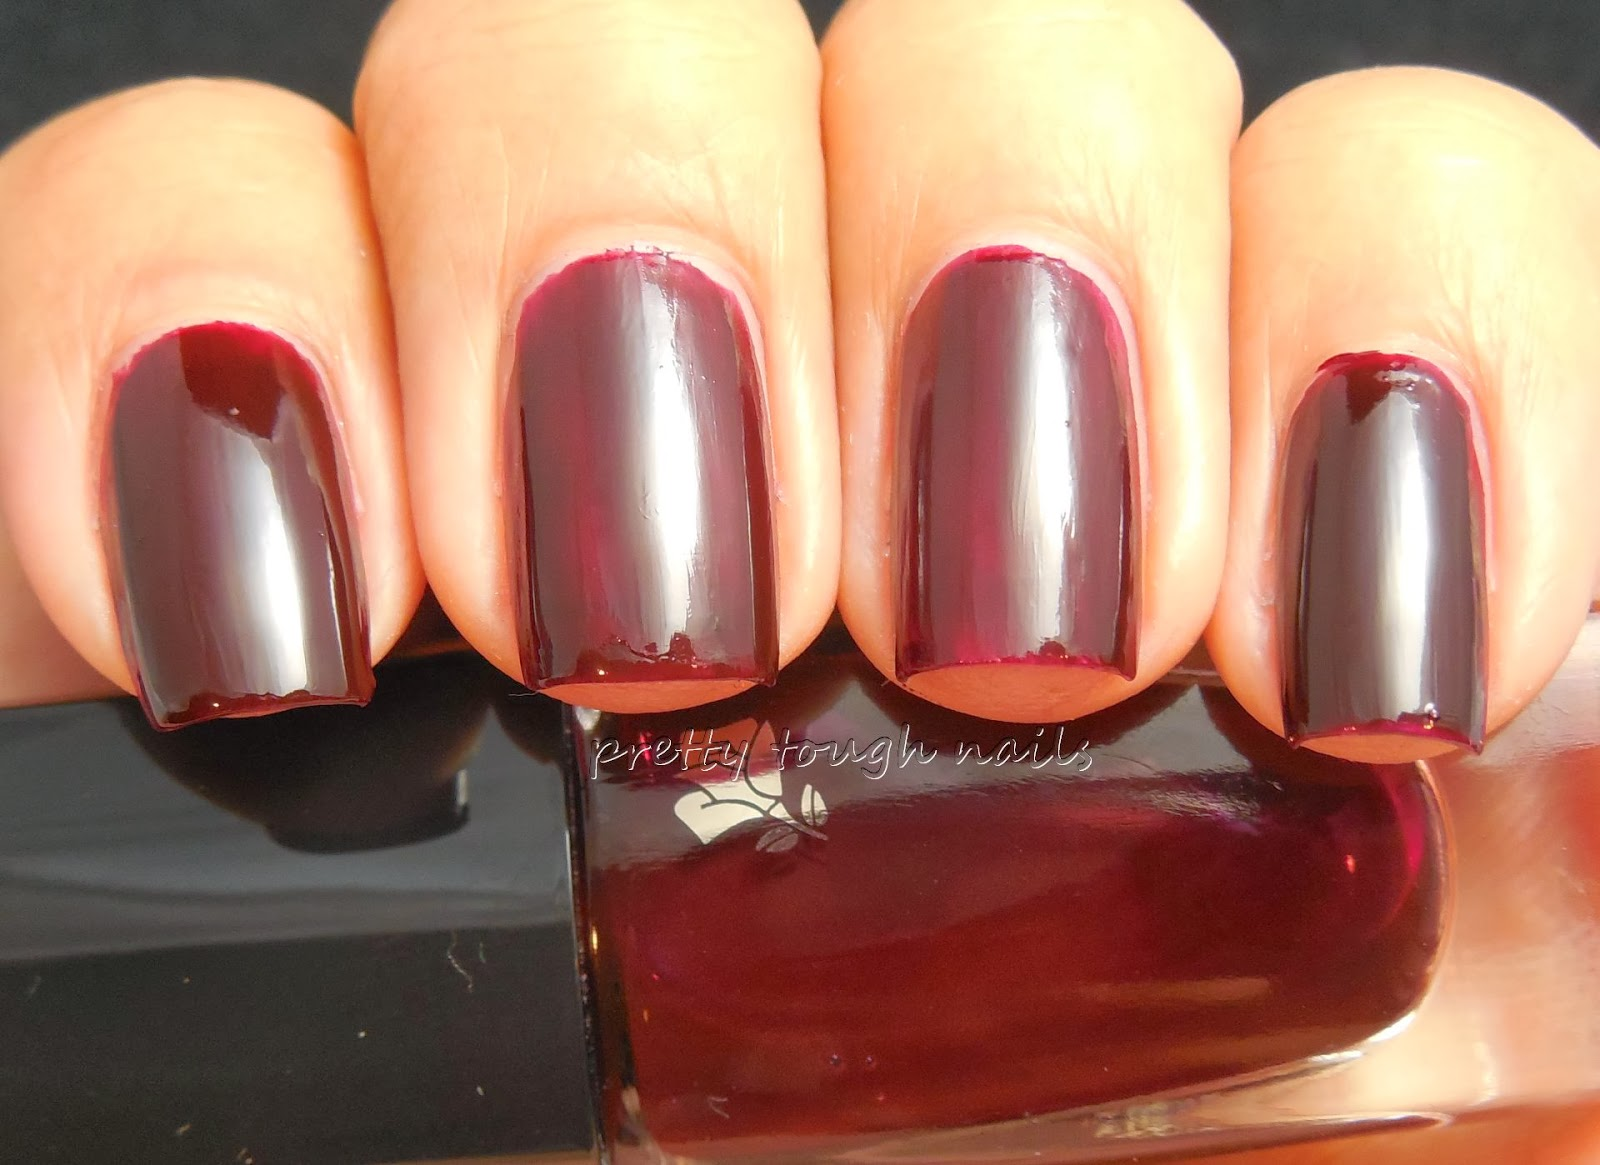 Pretty Tough Nails Hare Polish Shine Over Lancome Rouge Reglisse Swatch And Review